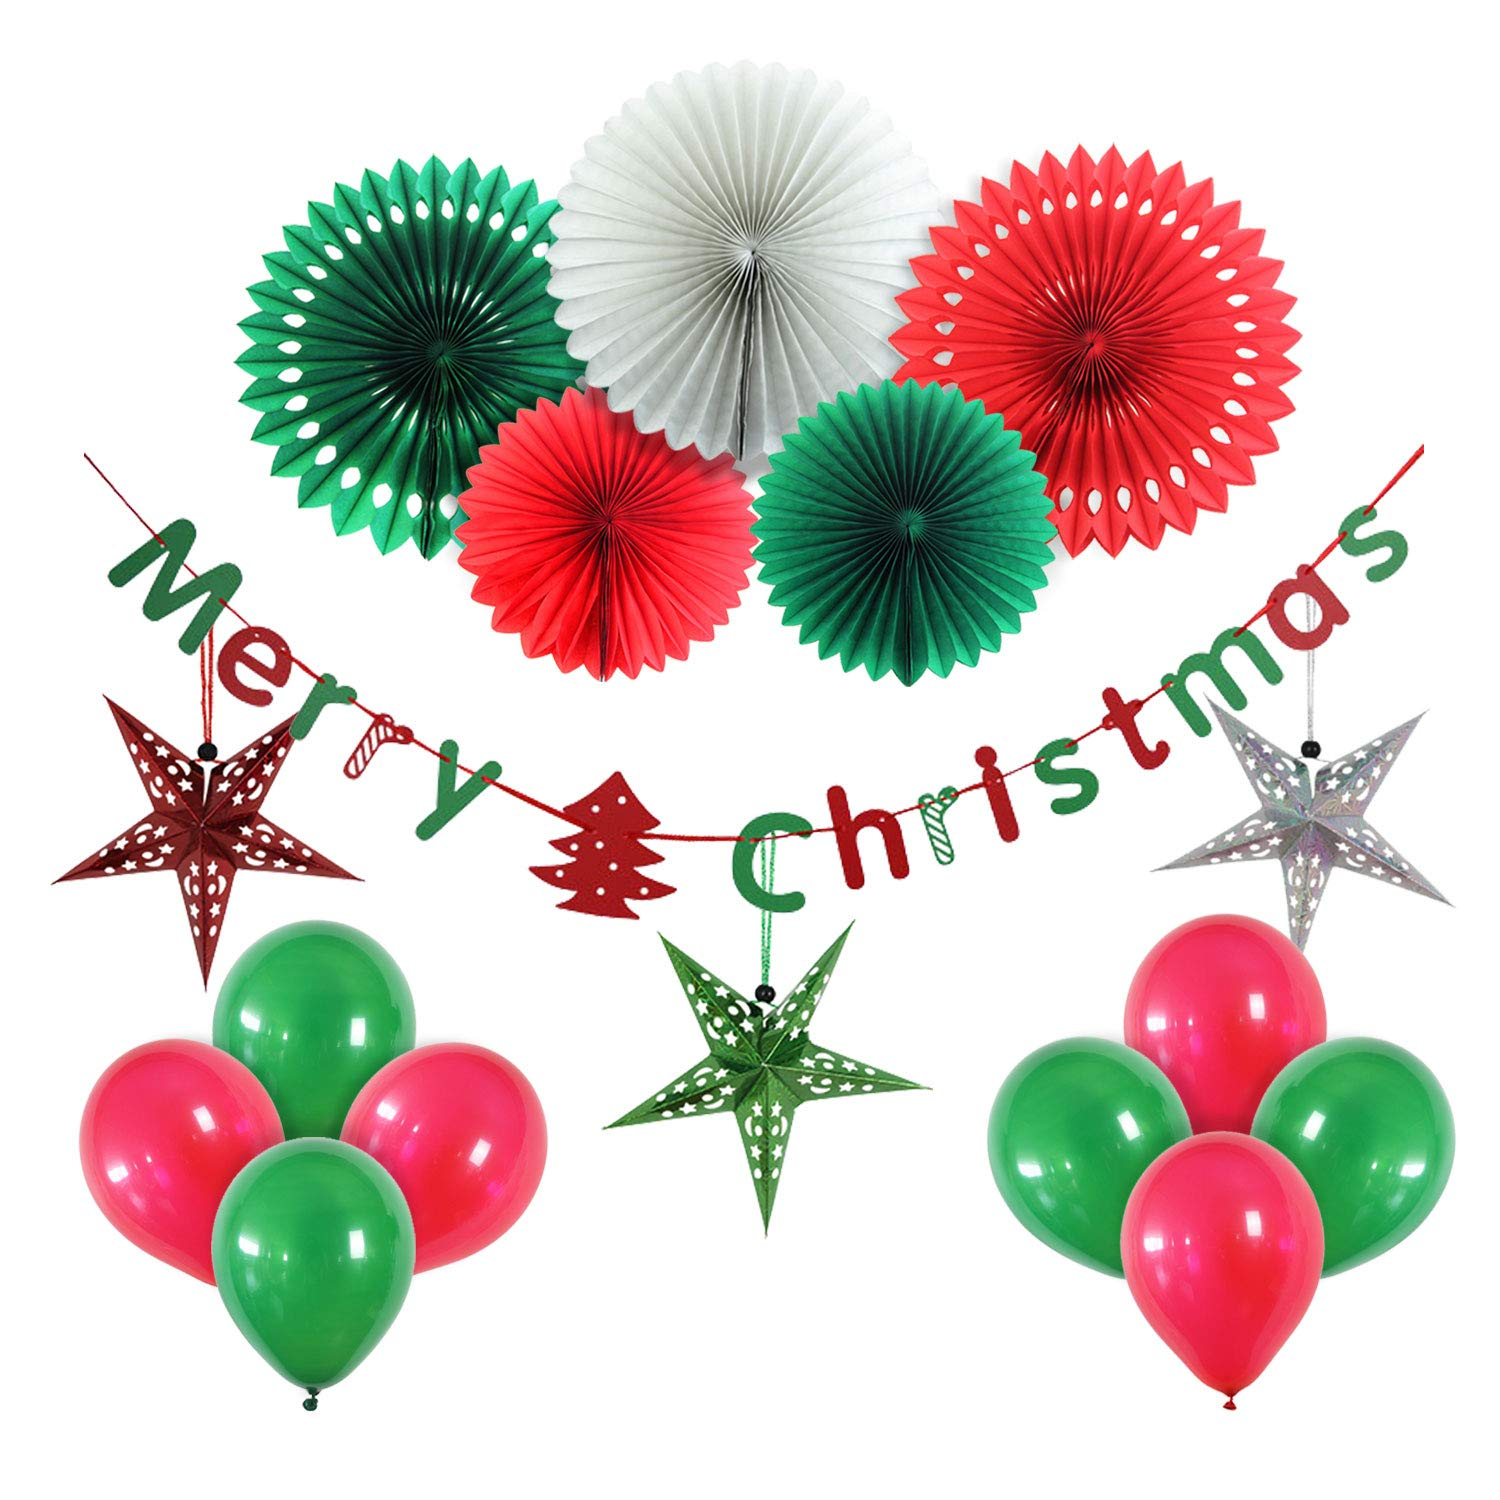 Christmas Party Decorations.Yotruth Christmas Party Decoration Set Of Hanging Tissue Paper Fans With Banner And Include Handmade Paper Stars Latten Trees Balloons Christmas